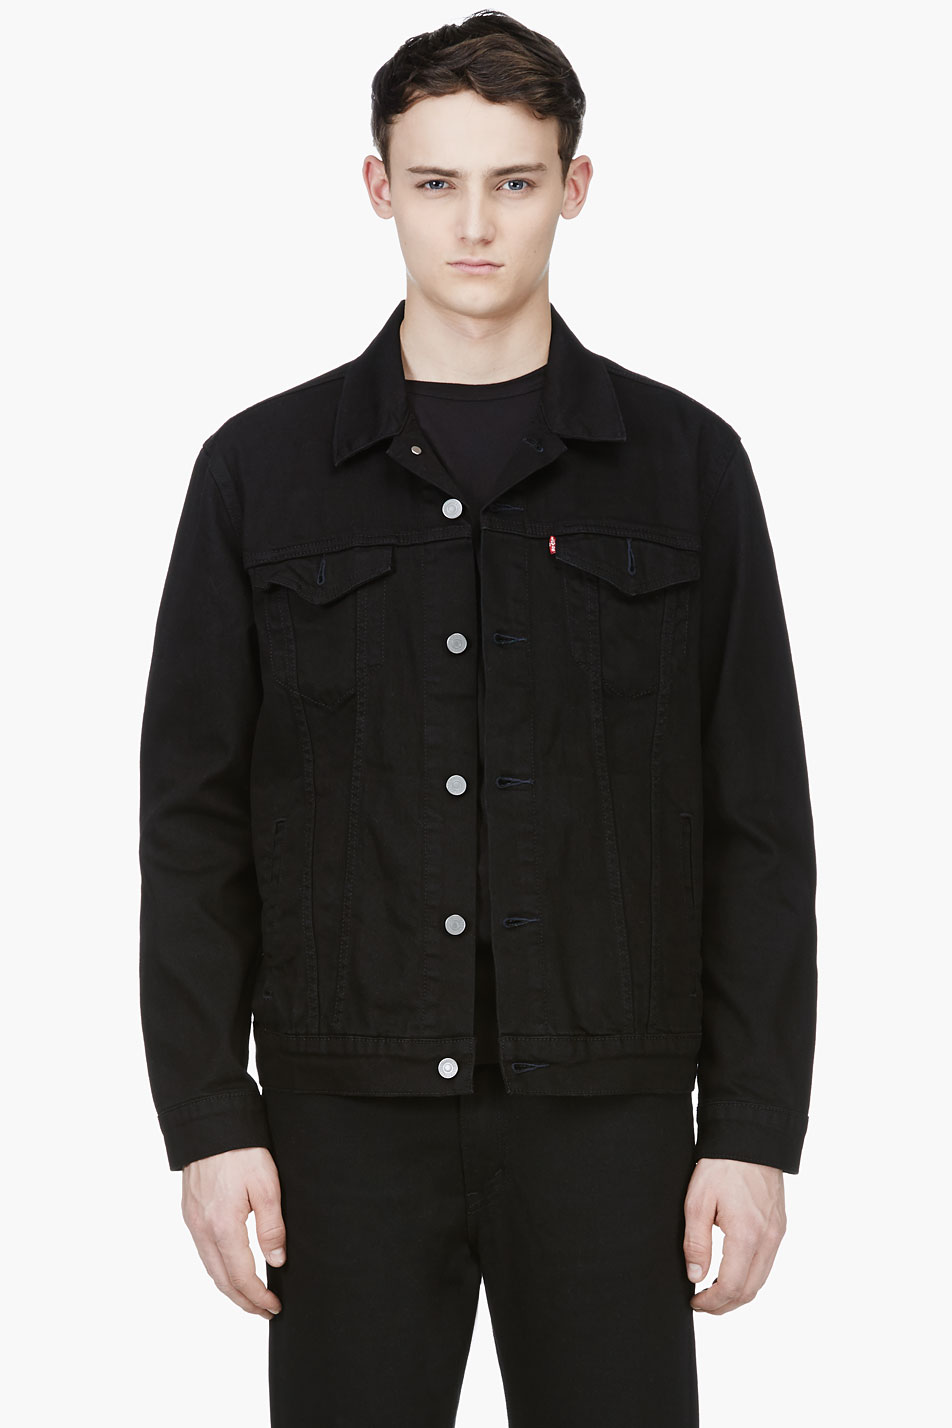 Levis black denim nightshine trucker jacket